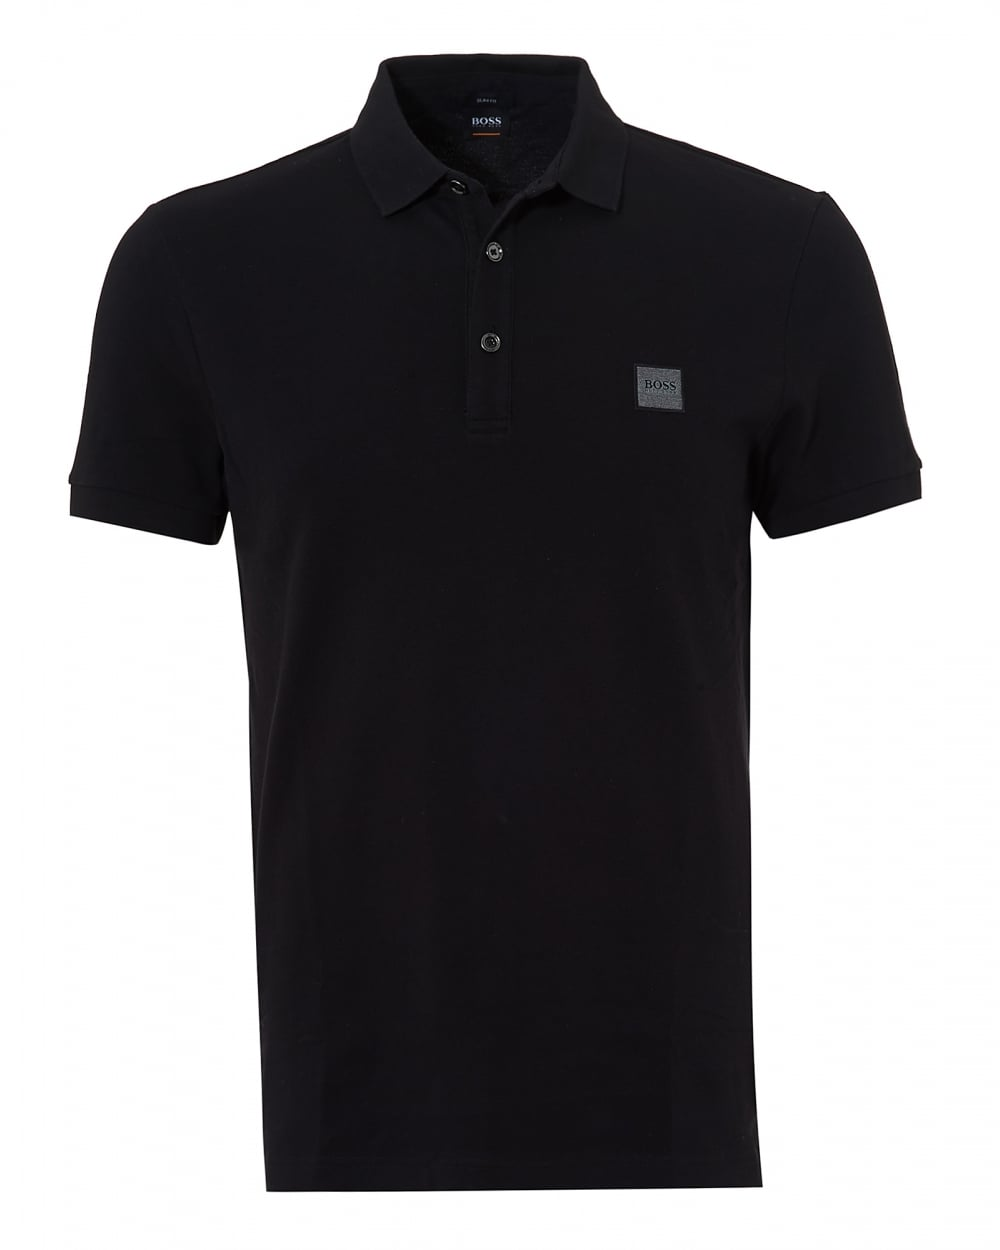 Mens Passenger Polo, Black Short Sleeve Polo Shirt